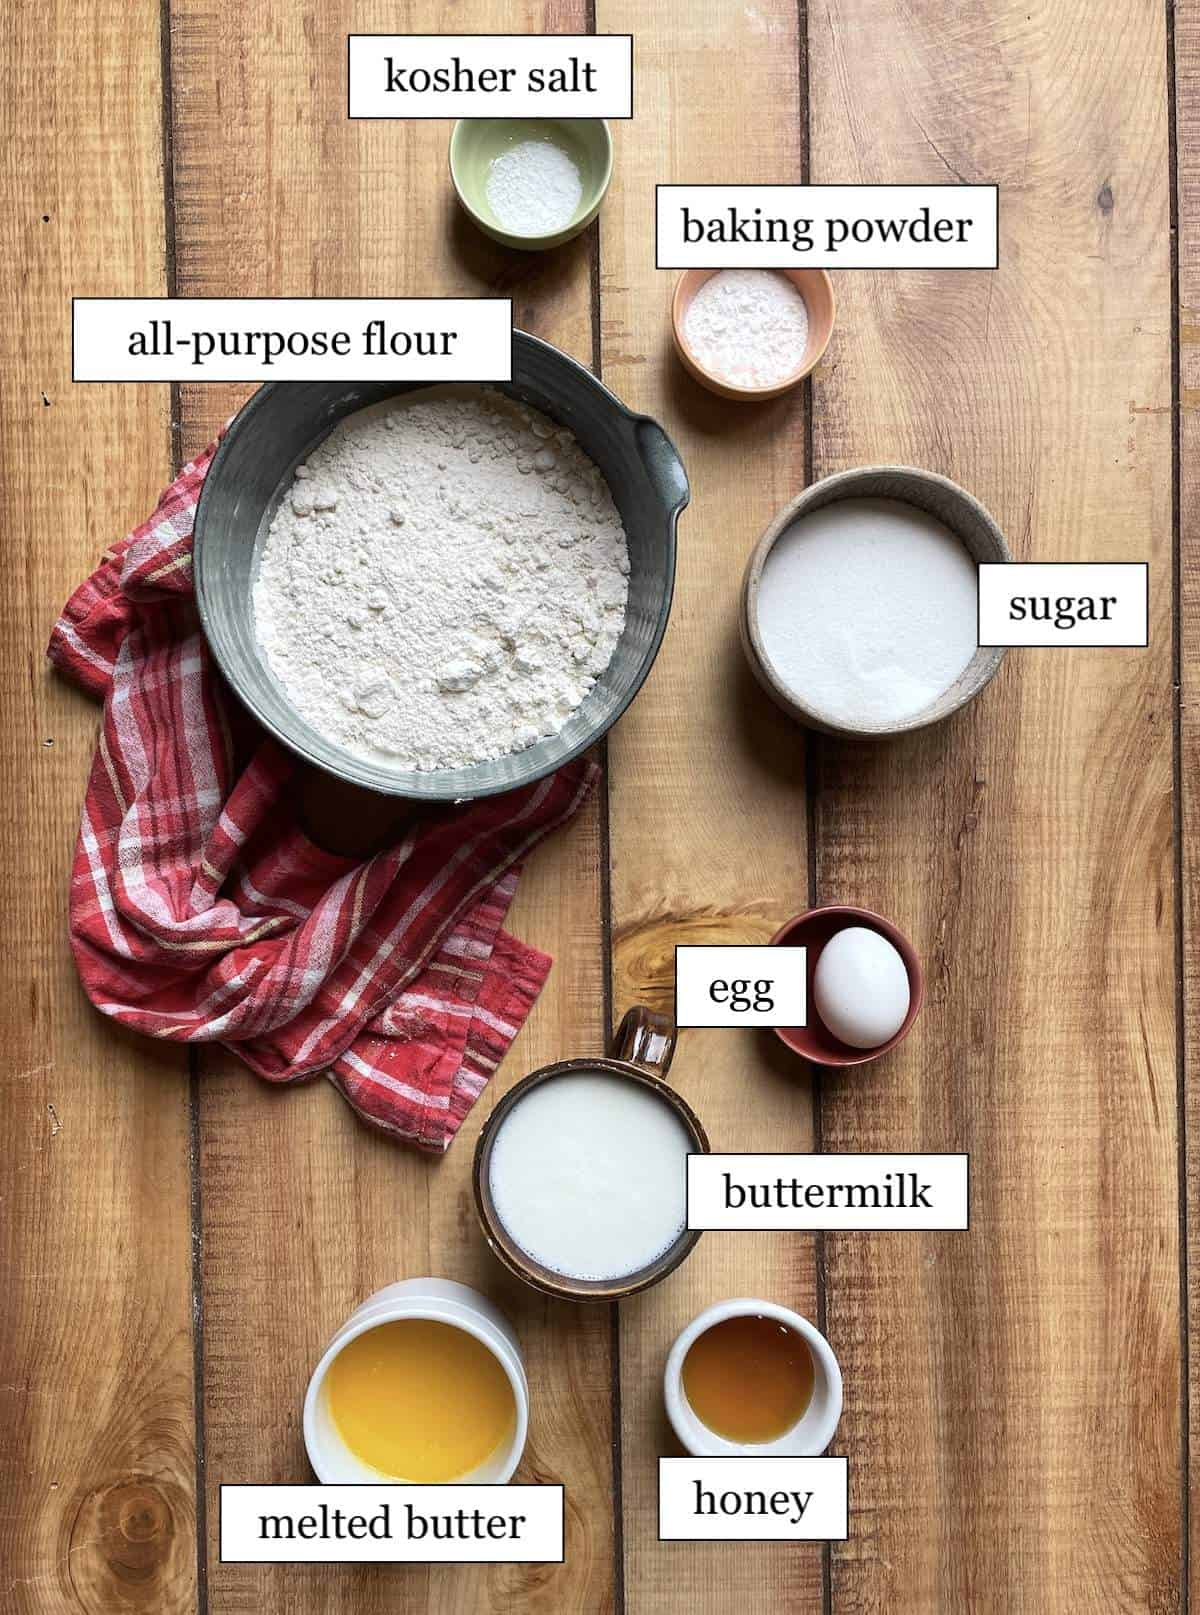 The ingredients in buttermilk muffins laid out in bowls and labeled.